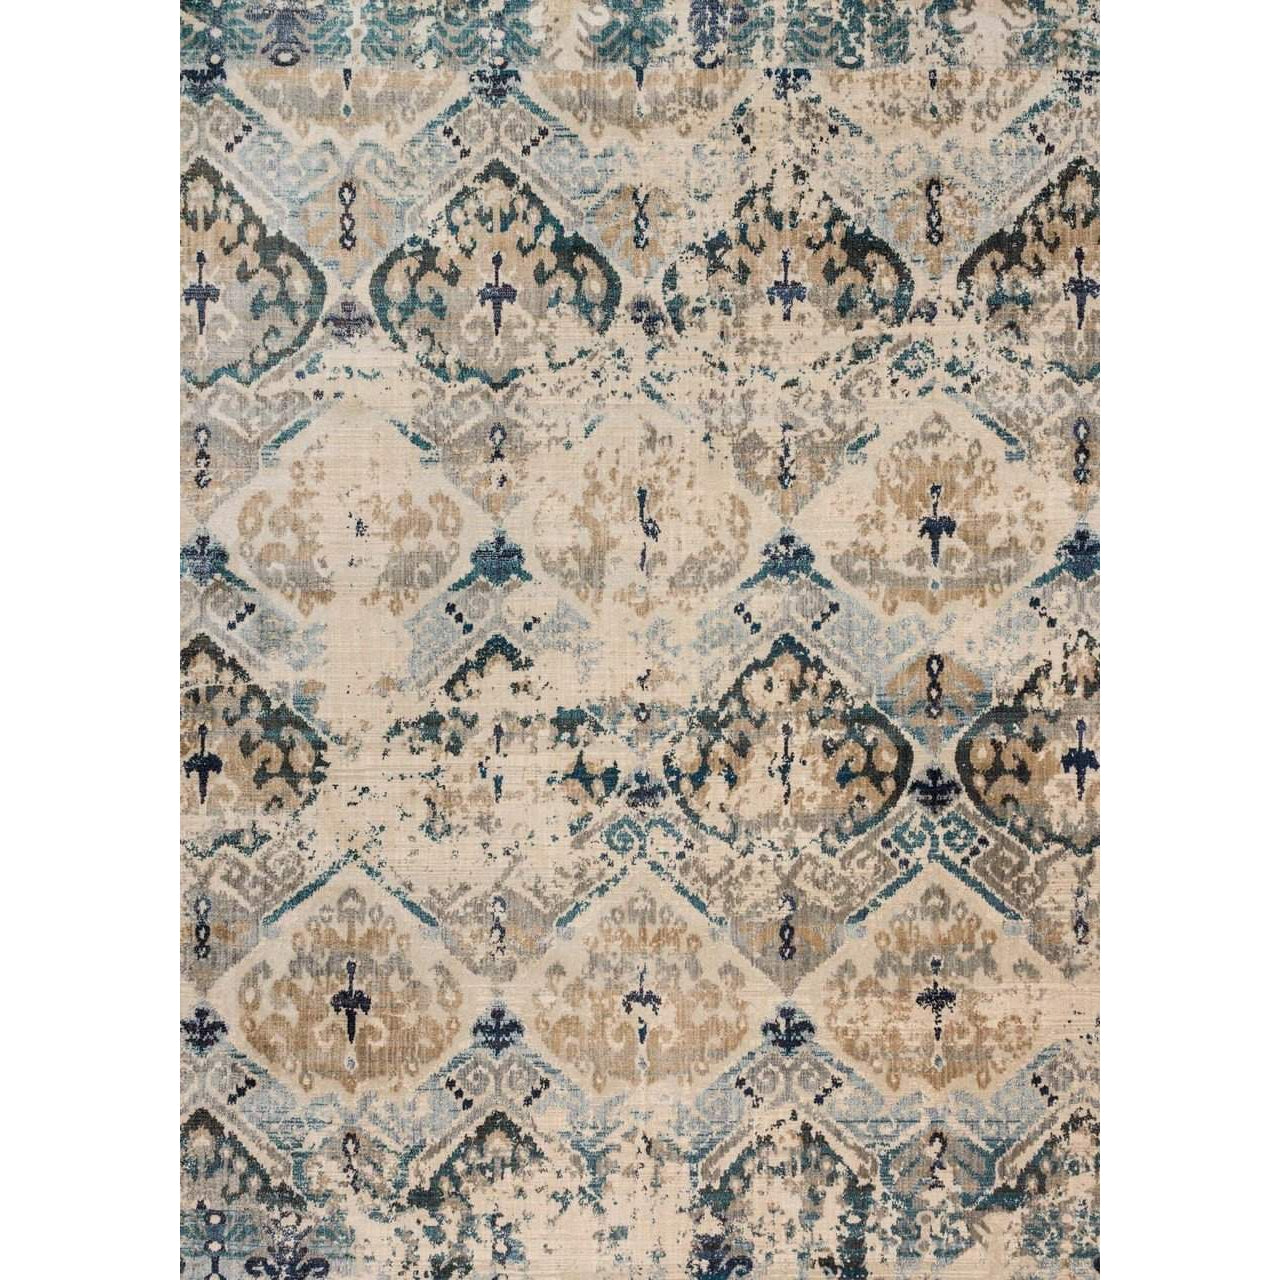 Joanna Gaines of Magnolia Home Kivi Rug Collection  - Sand / Ocean